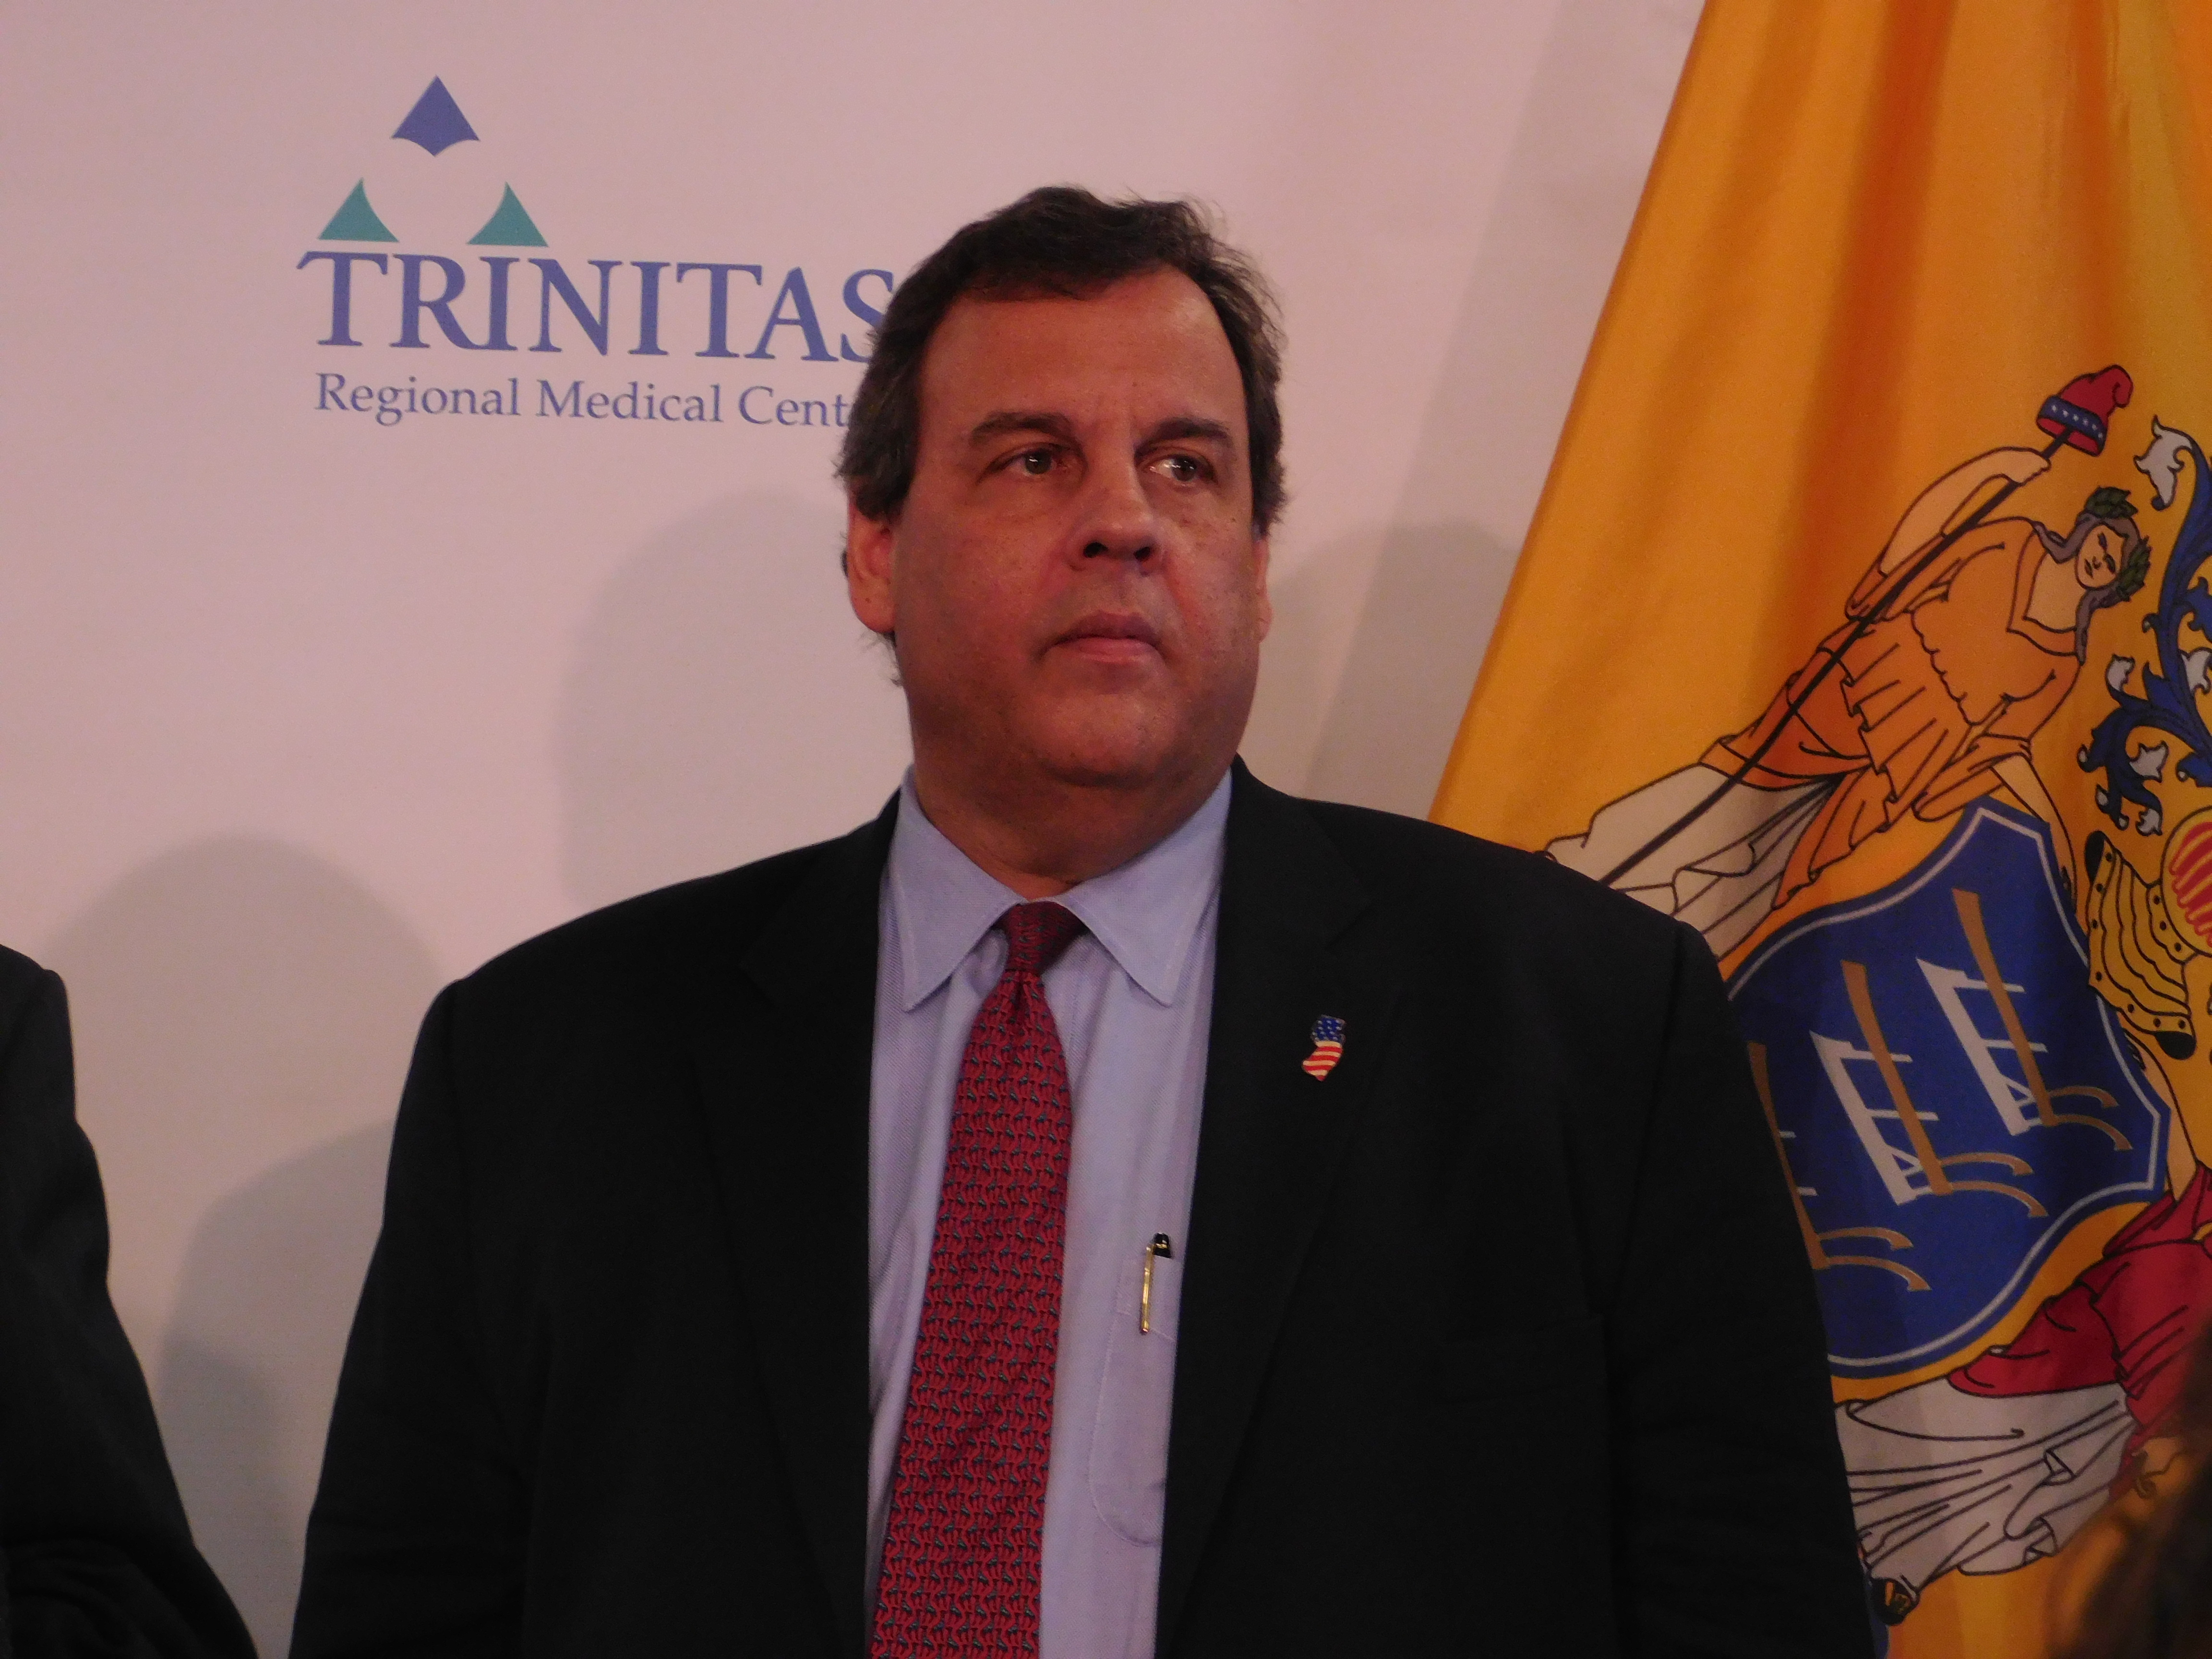 Christie unveiled his plan to determine tax exemptions for non-profits.